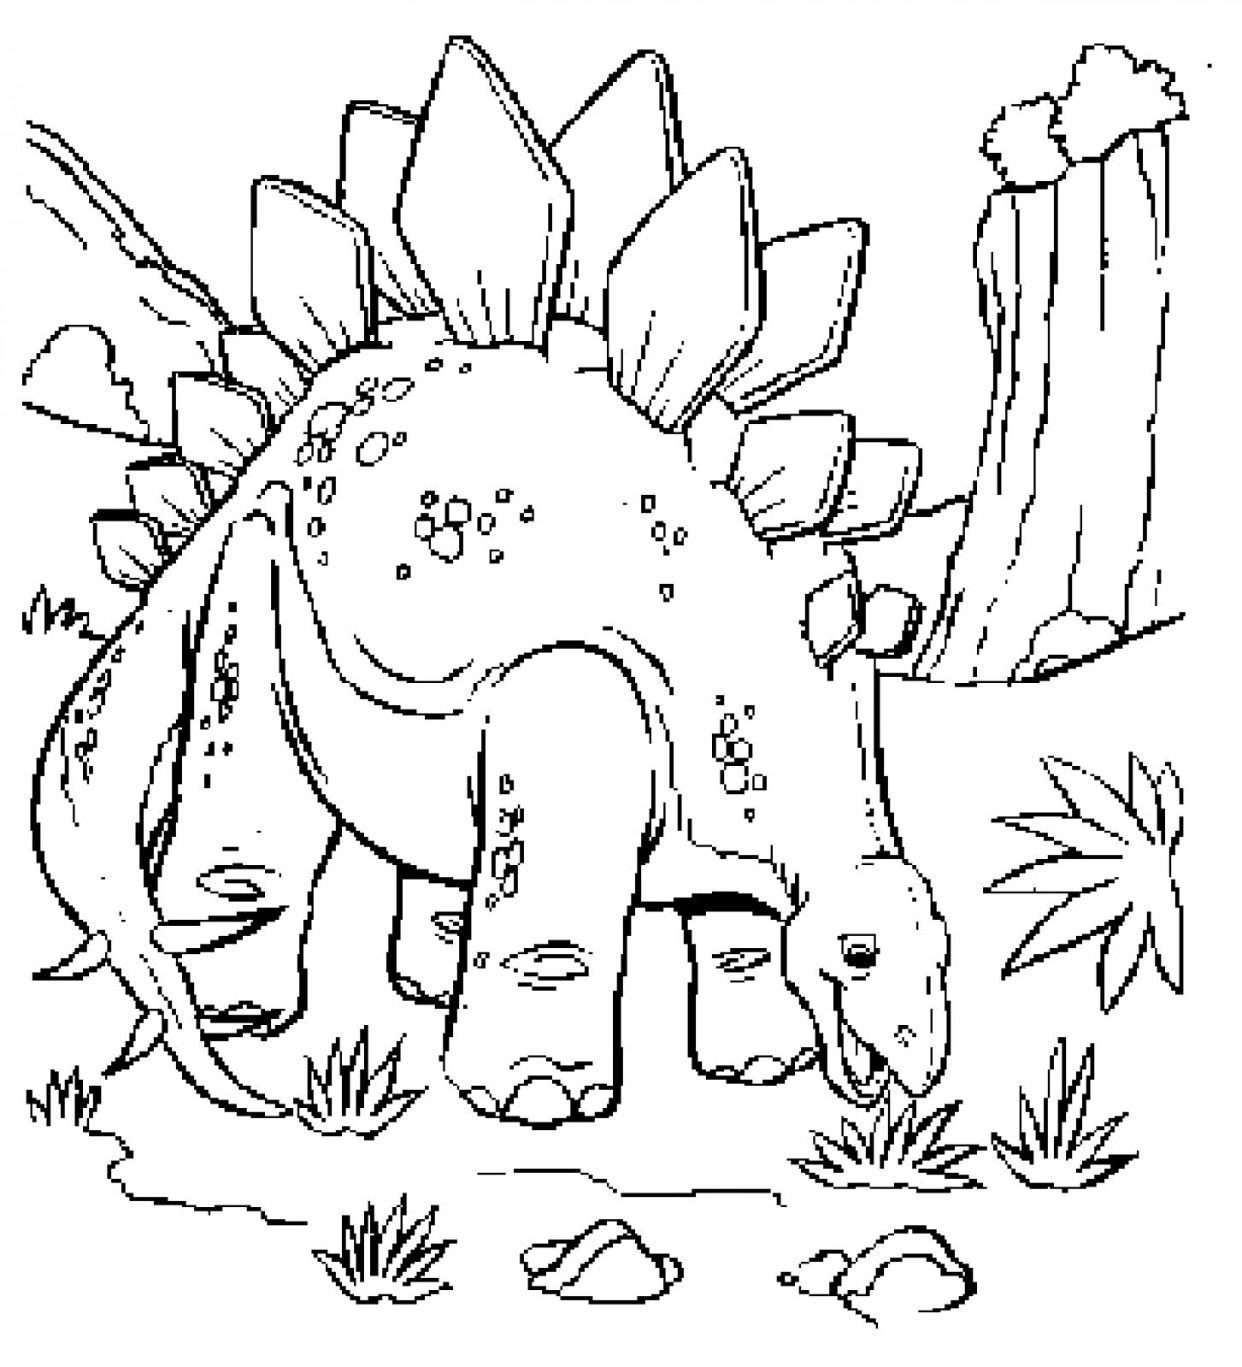 Free coloring book pages dinosaurs - Jurassic Park Dinosaur Eat 2 Coloring Page